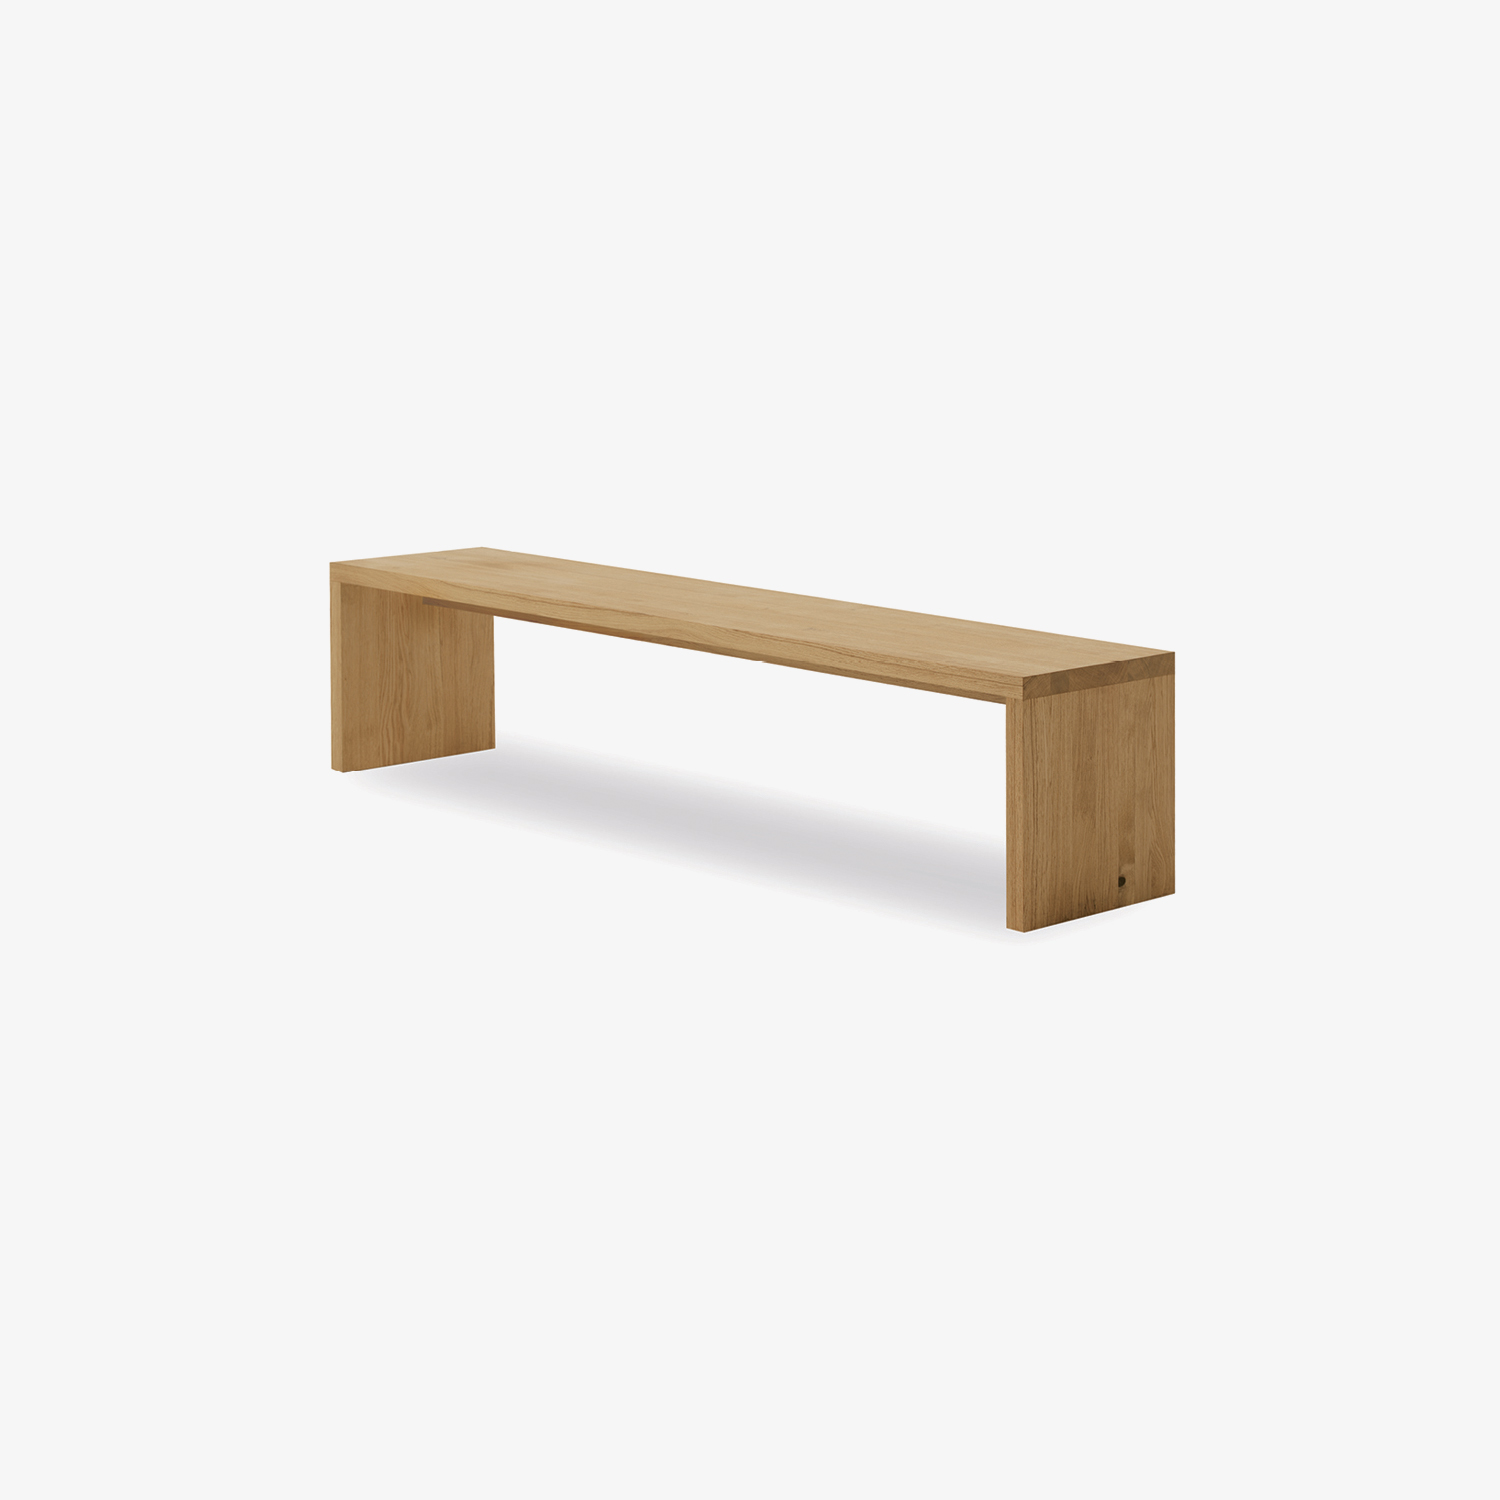 Solid wood bench NATURA 2 | Modern indoor bench | Bench